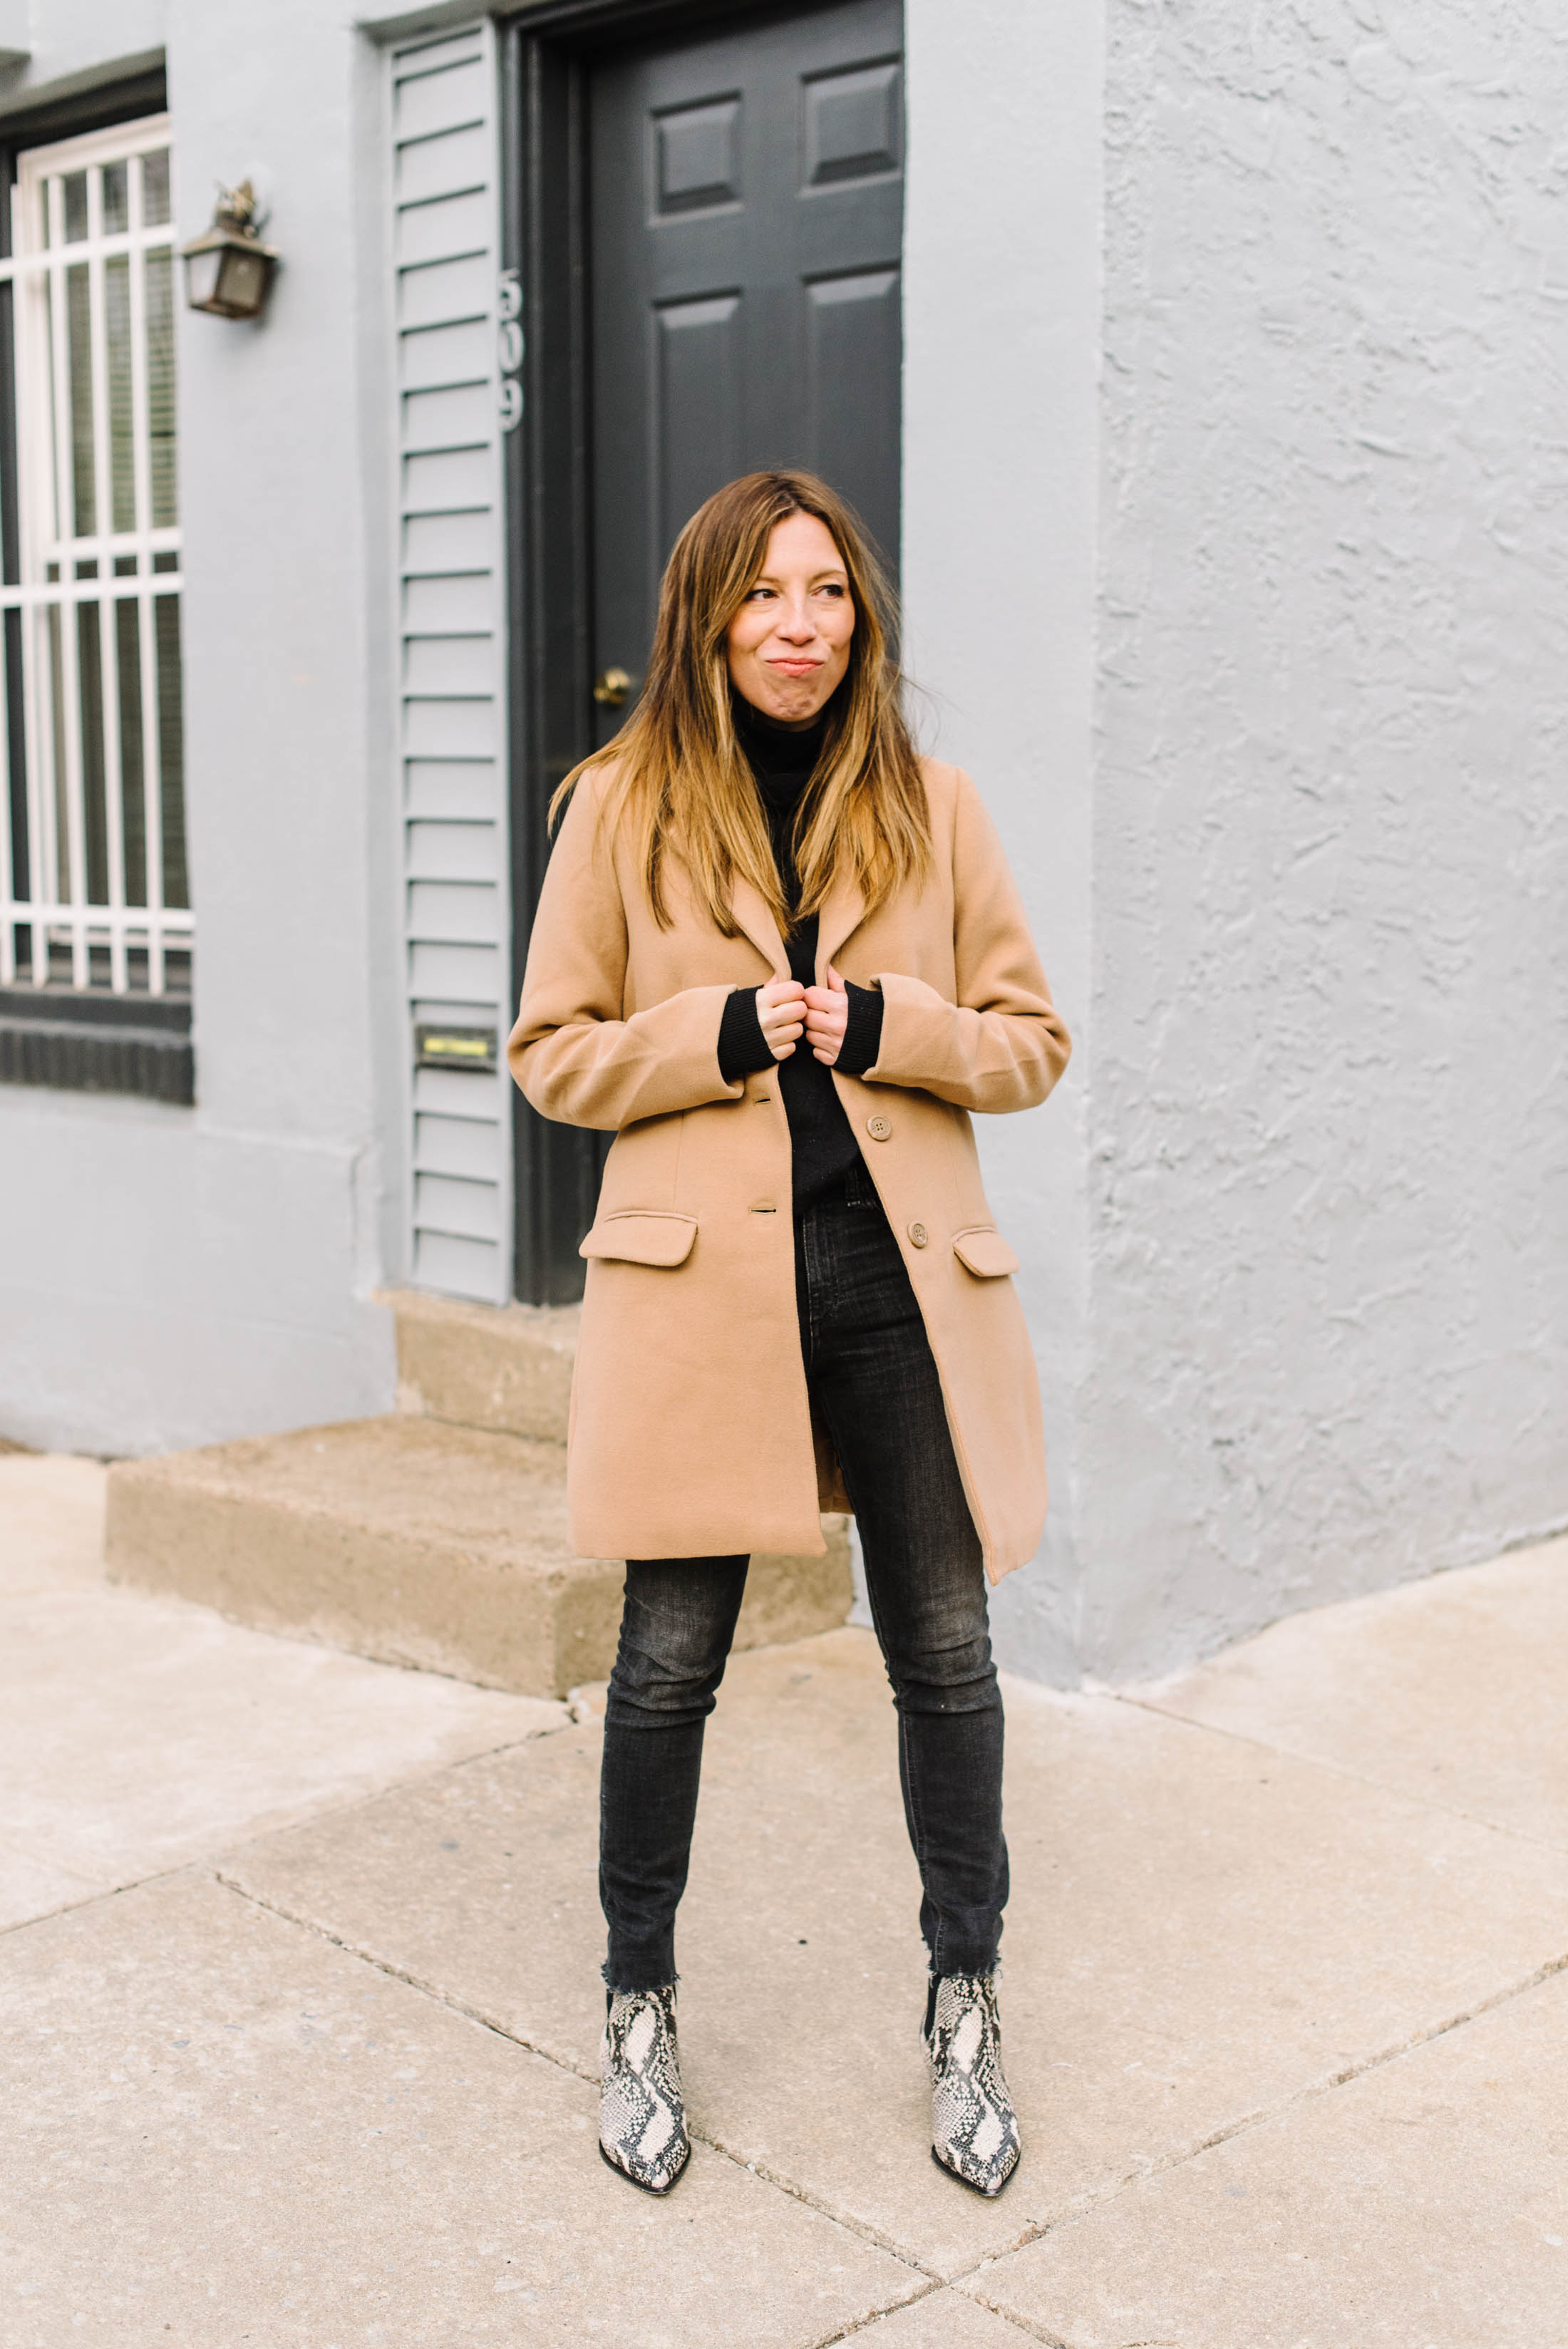 Still stuck in your all-black outfit? Us too. It's almost Spring, so stay comfy & chic — but add some LIGHT. Enter this coat & these booties. Outfit DONE.